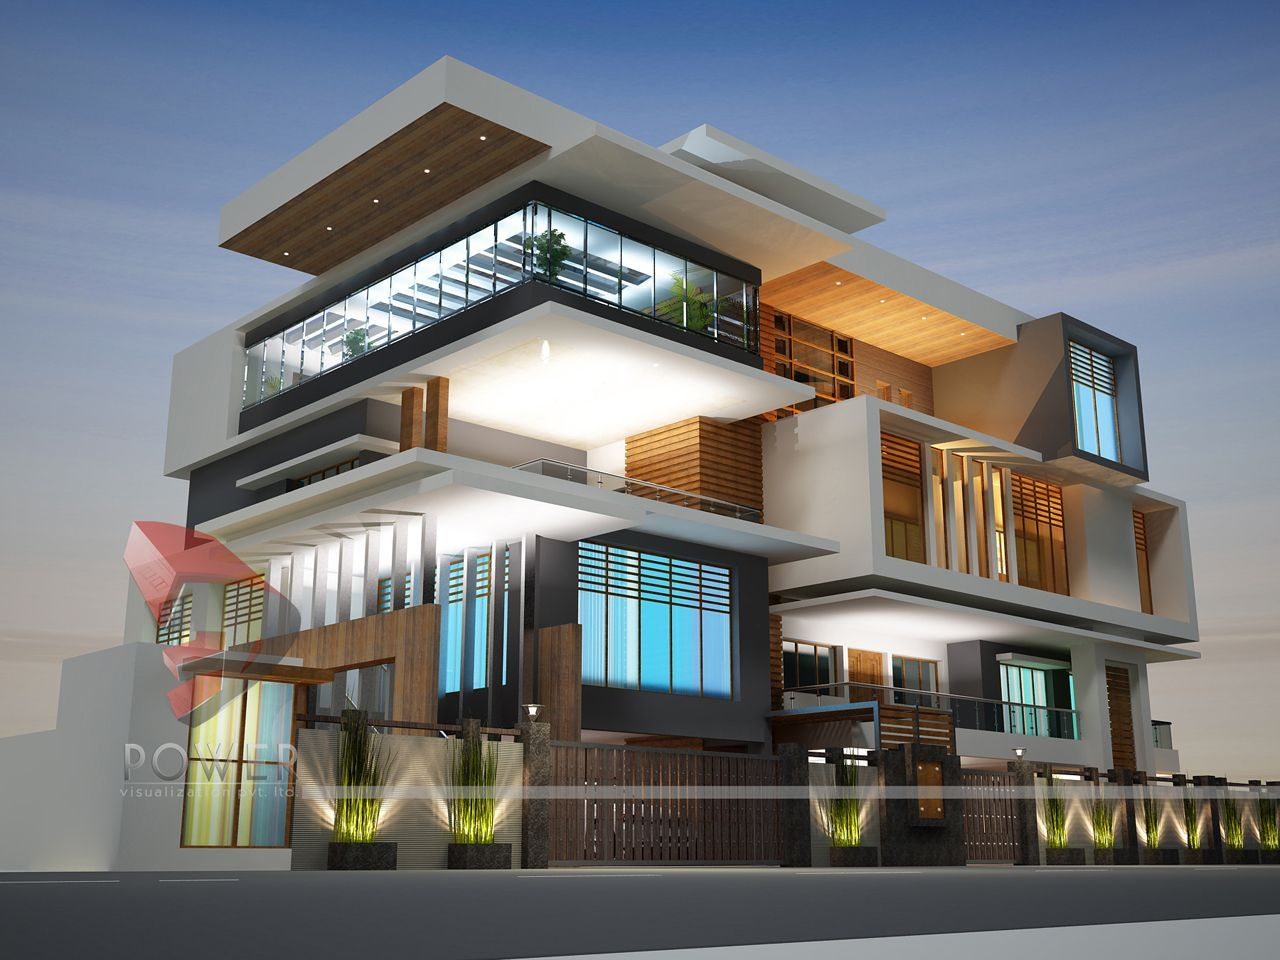 Modern house design in india architecture india modern for Best indian architectural affordable home designs